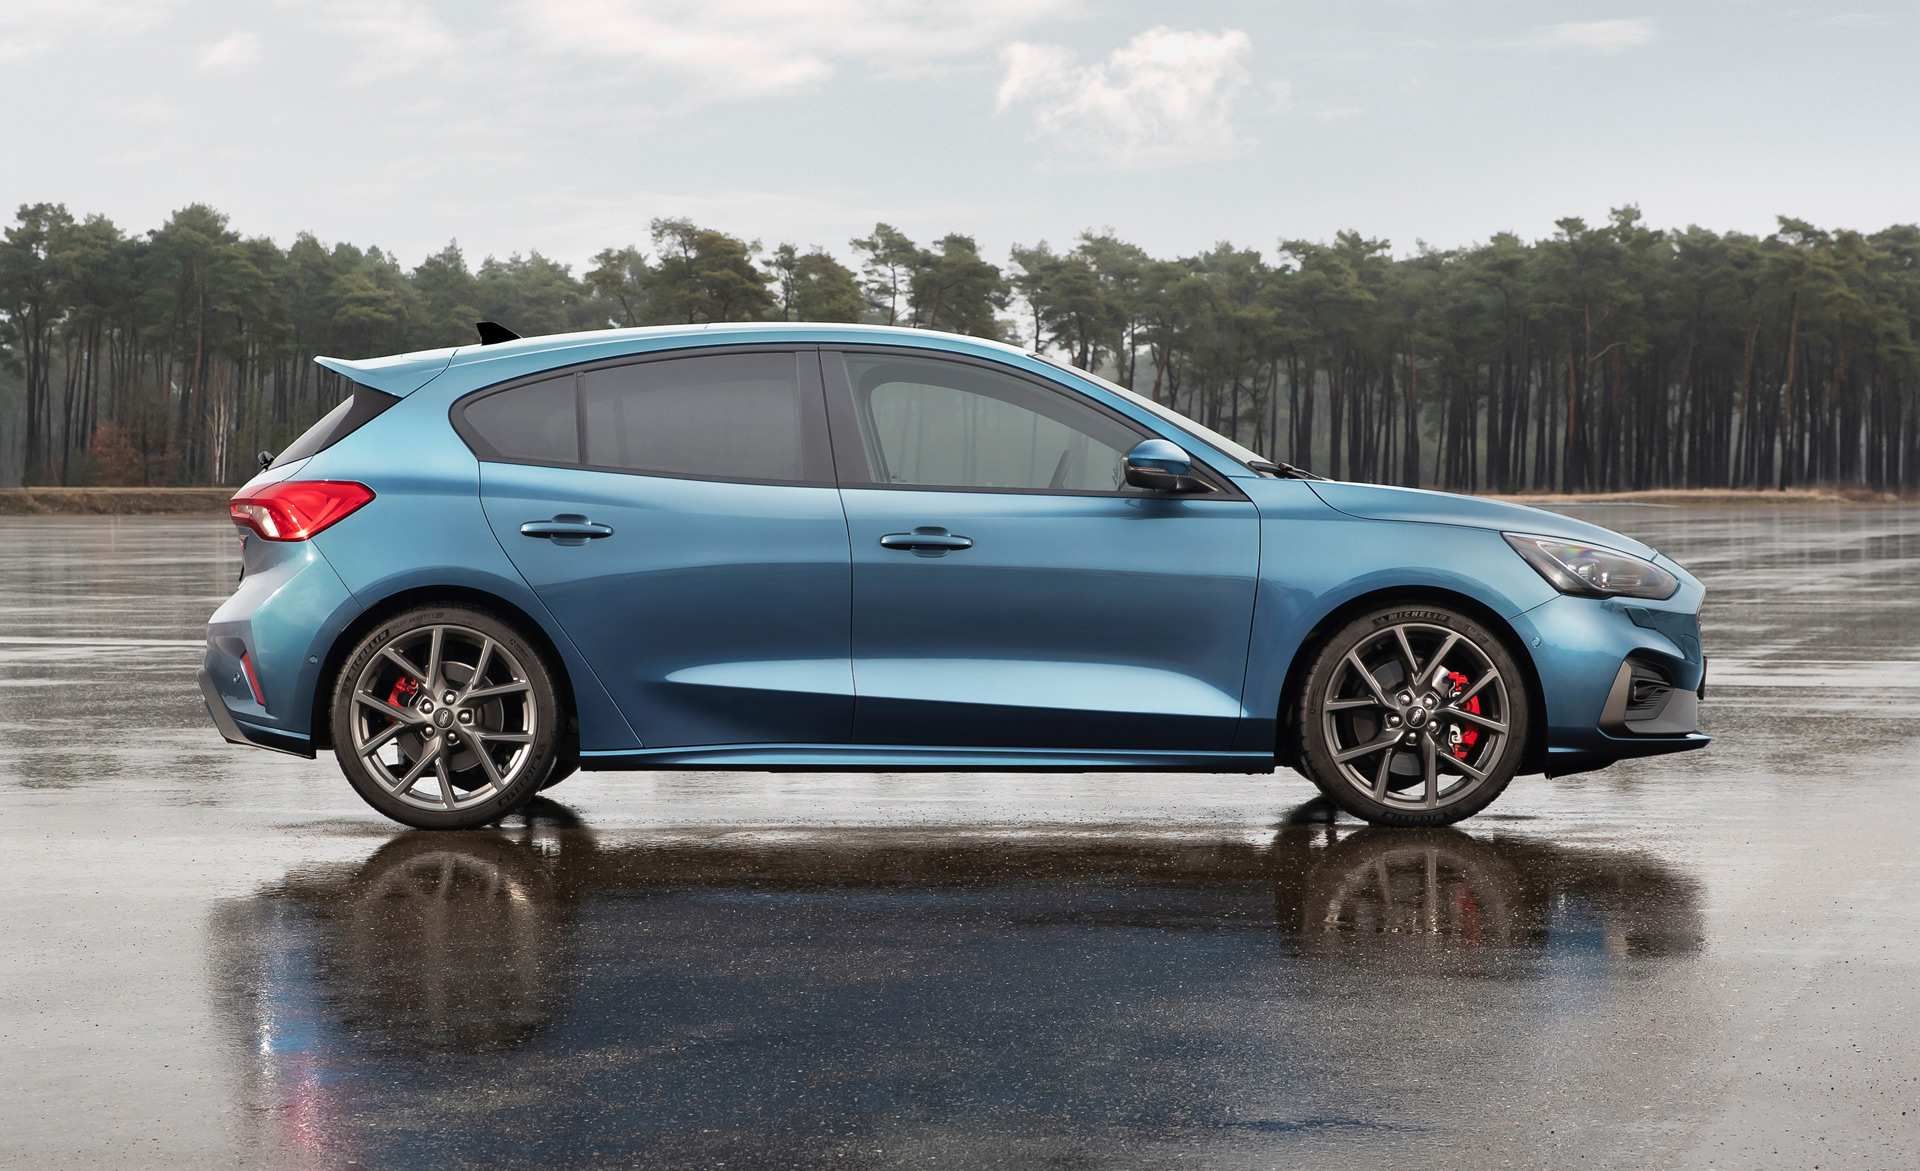 42 New Ford Focus 2020 Concept And Review